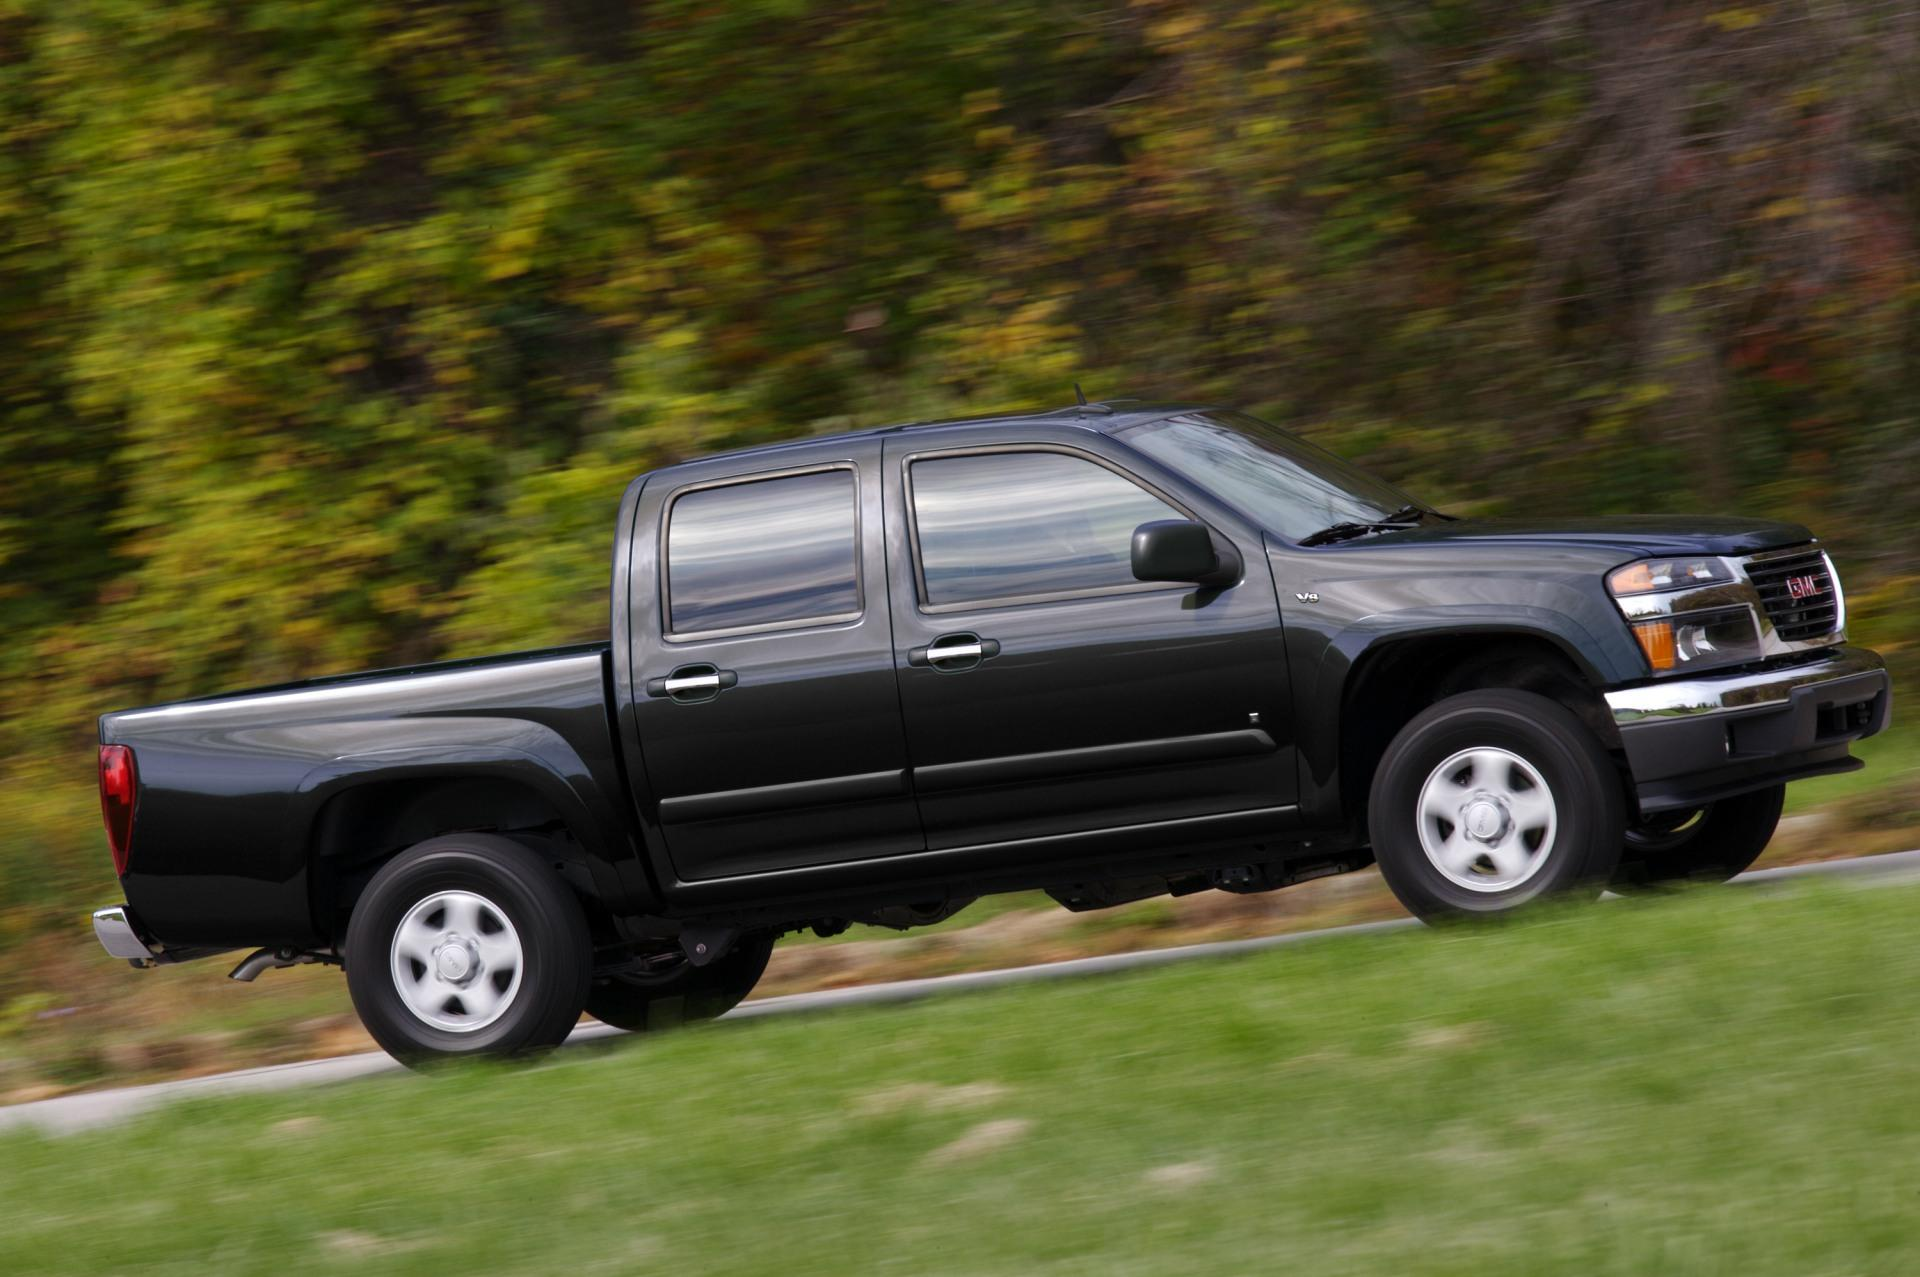 2010 gmc canyon technical specifications and data engine. Black Bedroom Furniture Sets. Home Design Ideas